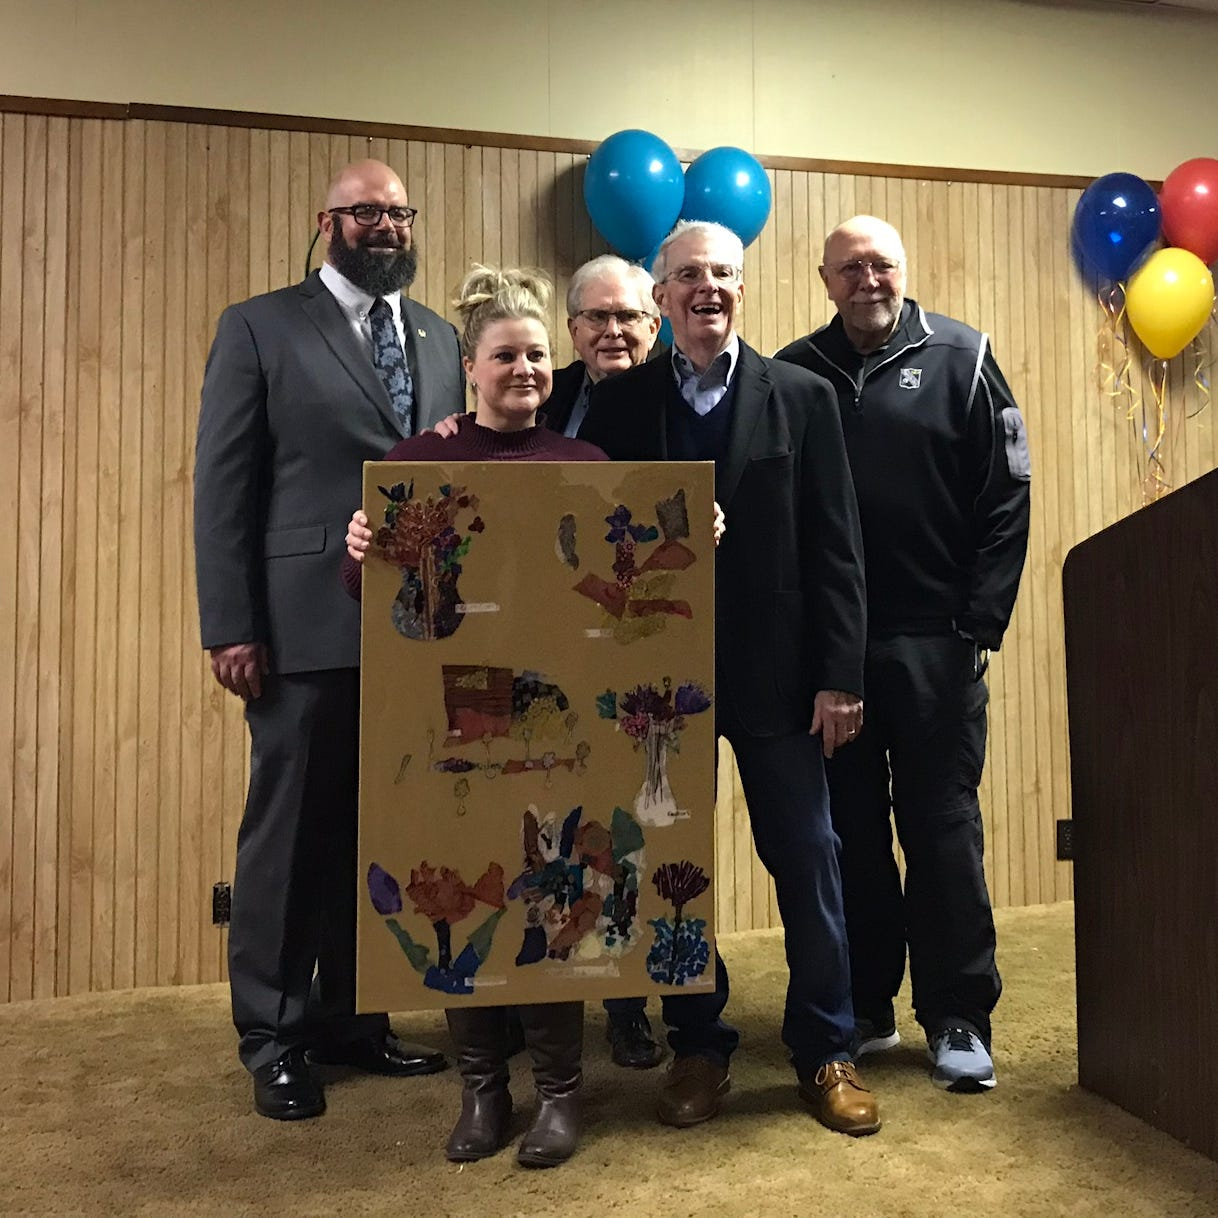 Rick Robertson, Ashley White, Bill Brodie, David Turrentine and Hershel Ryan hold a piece of art created for the Jaycees in appreciation.